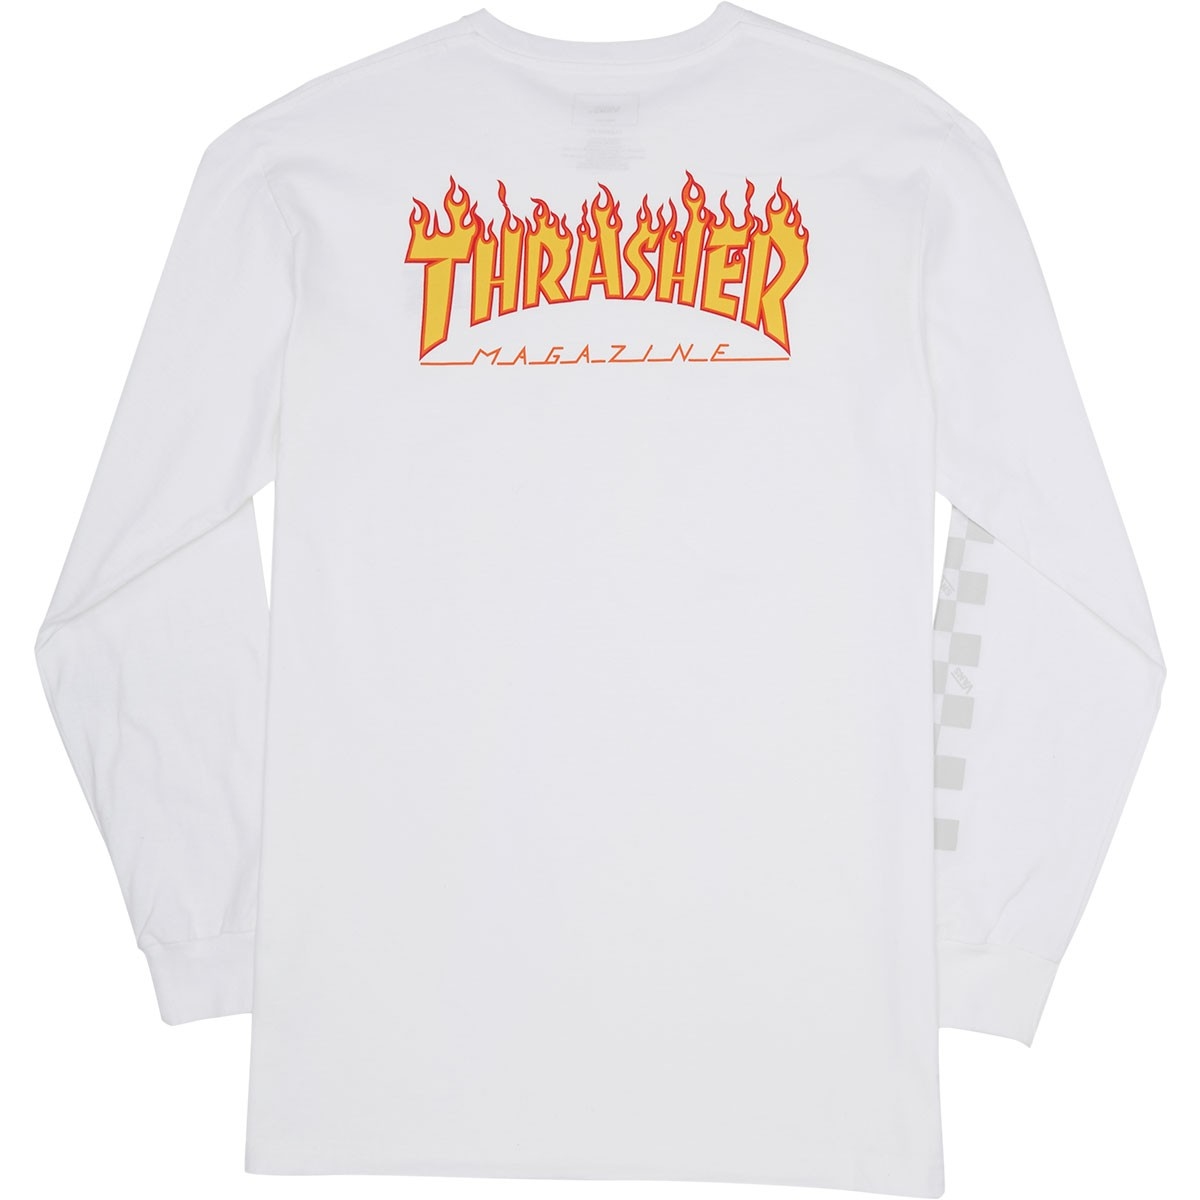 6affabc3a9 vans x thrasher checkered long sleeve t-shirt off 64% - www.sarl ...